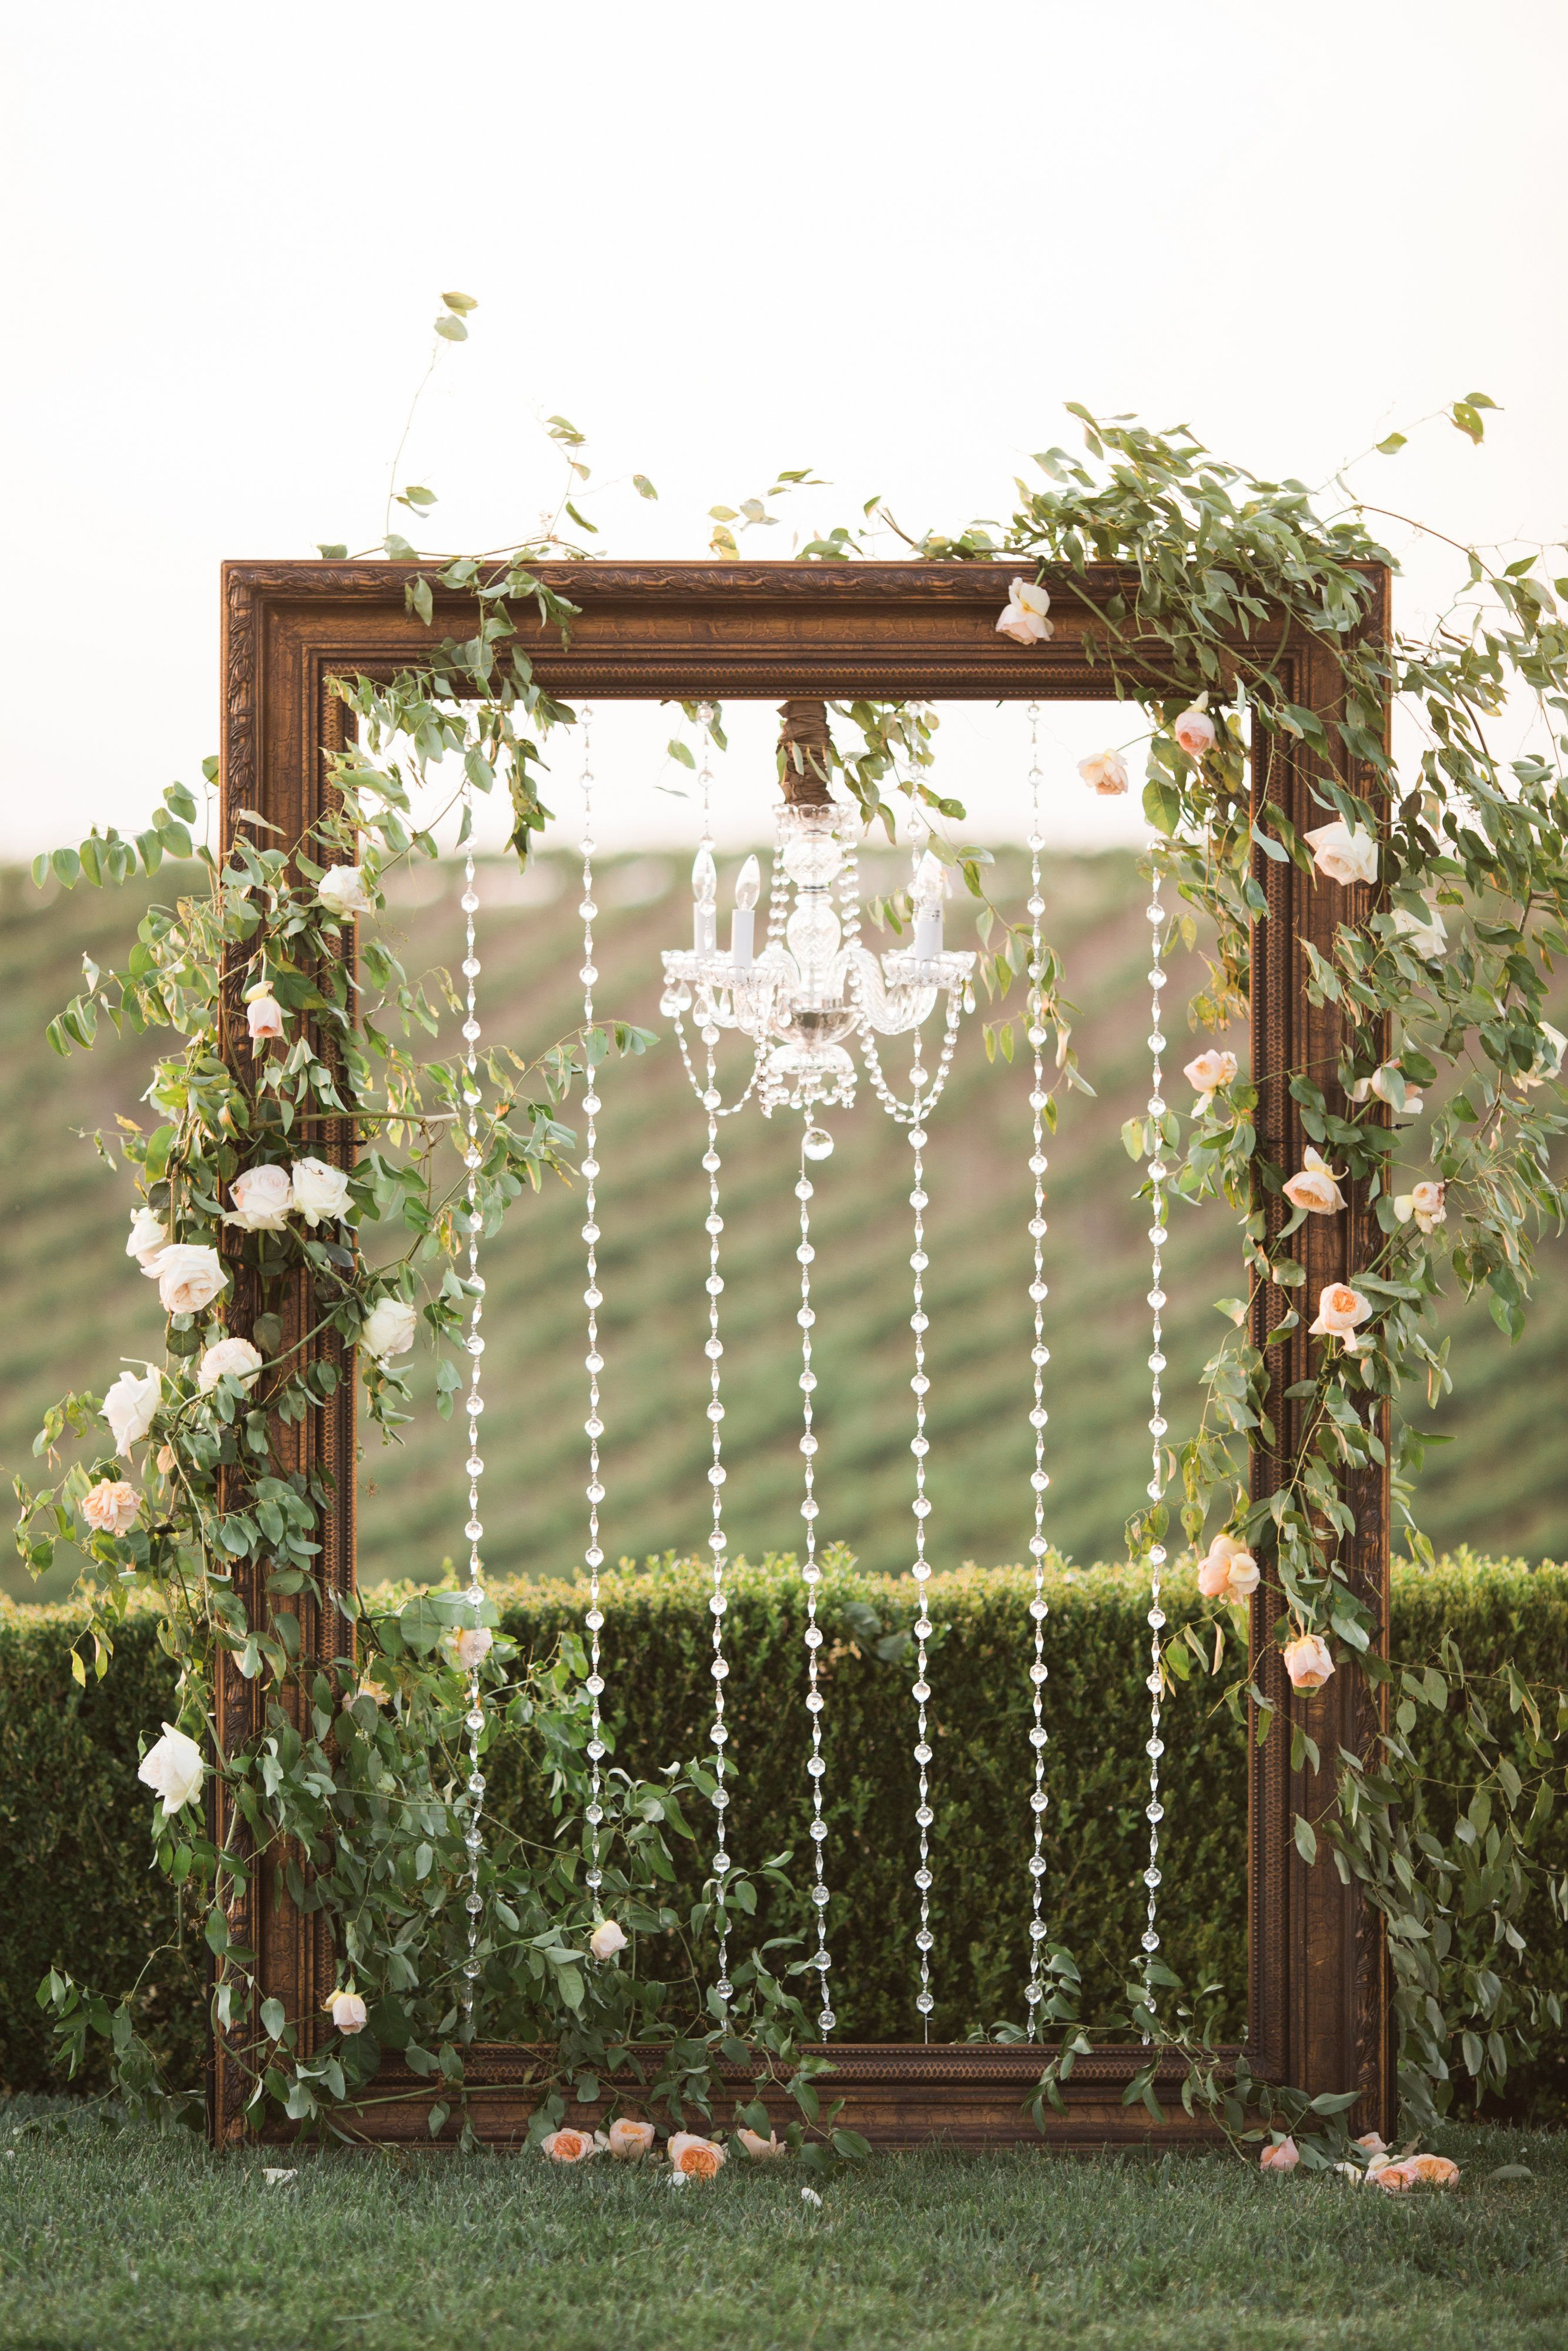 Best ideas about DIY Wedding Arch Frame . Save or Pin Frame & chandelier wedding arch Winery West Lawn Now.